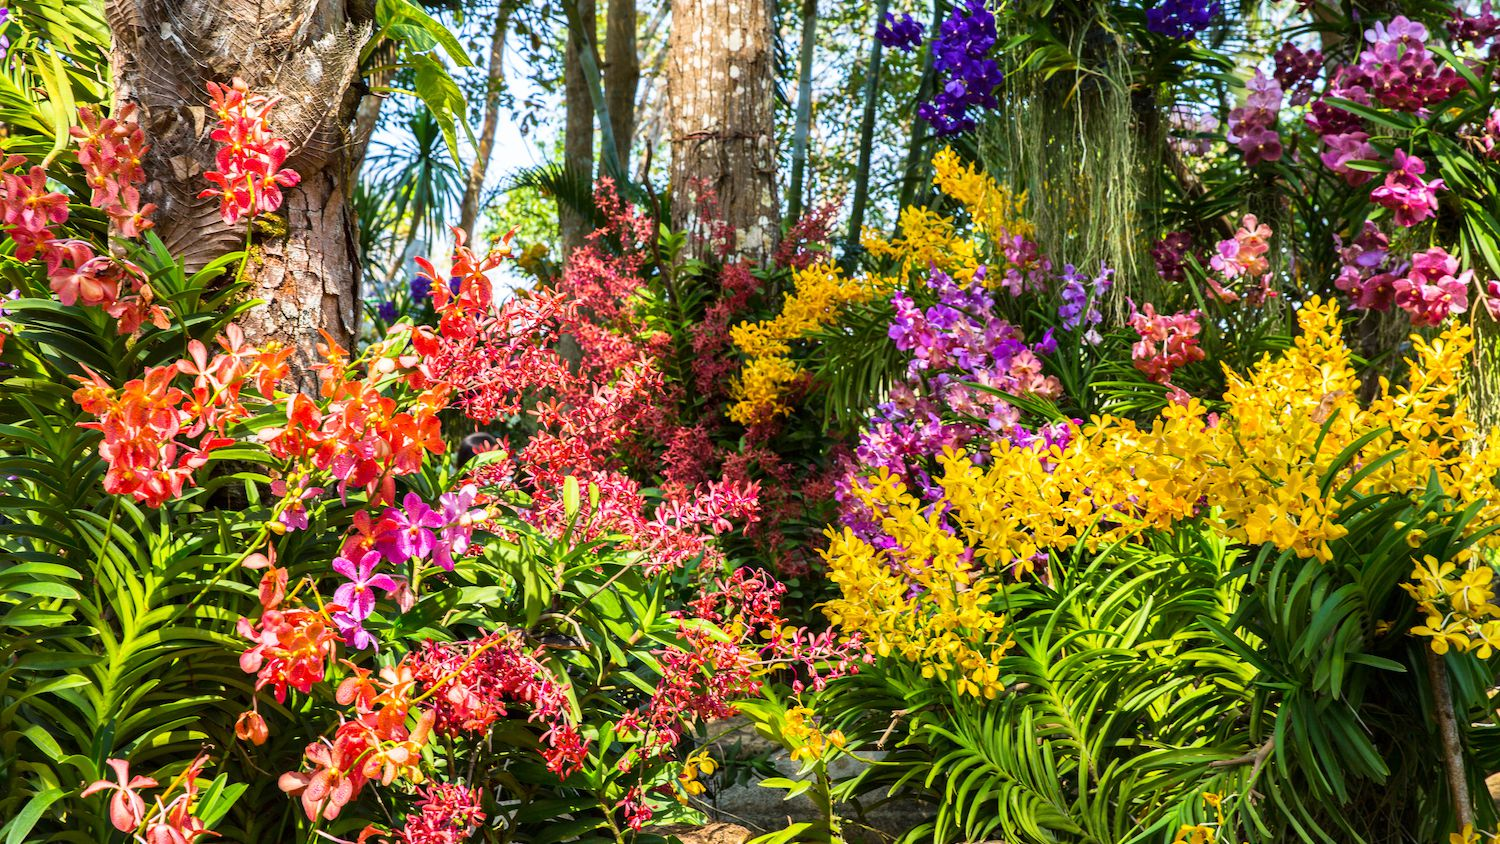 How To Grow An Amazing Flower Garden